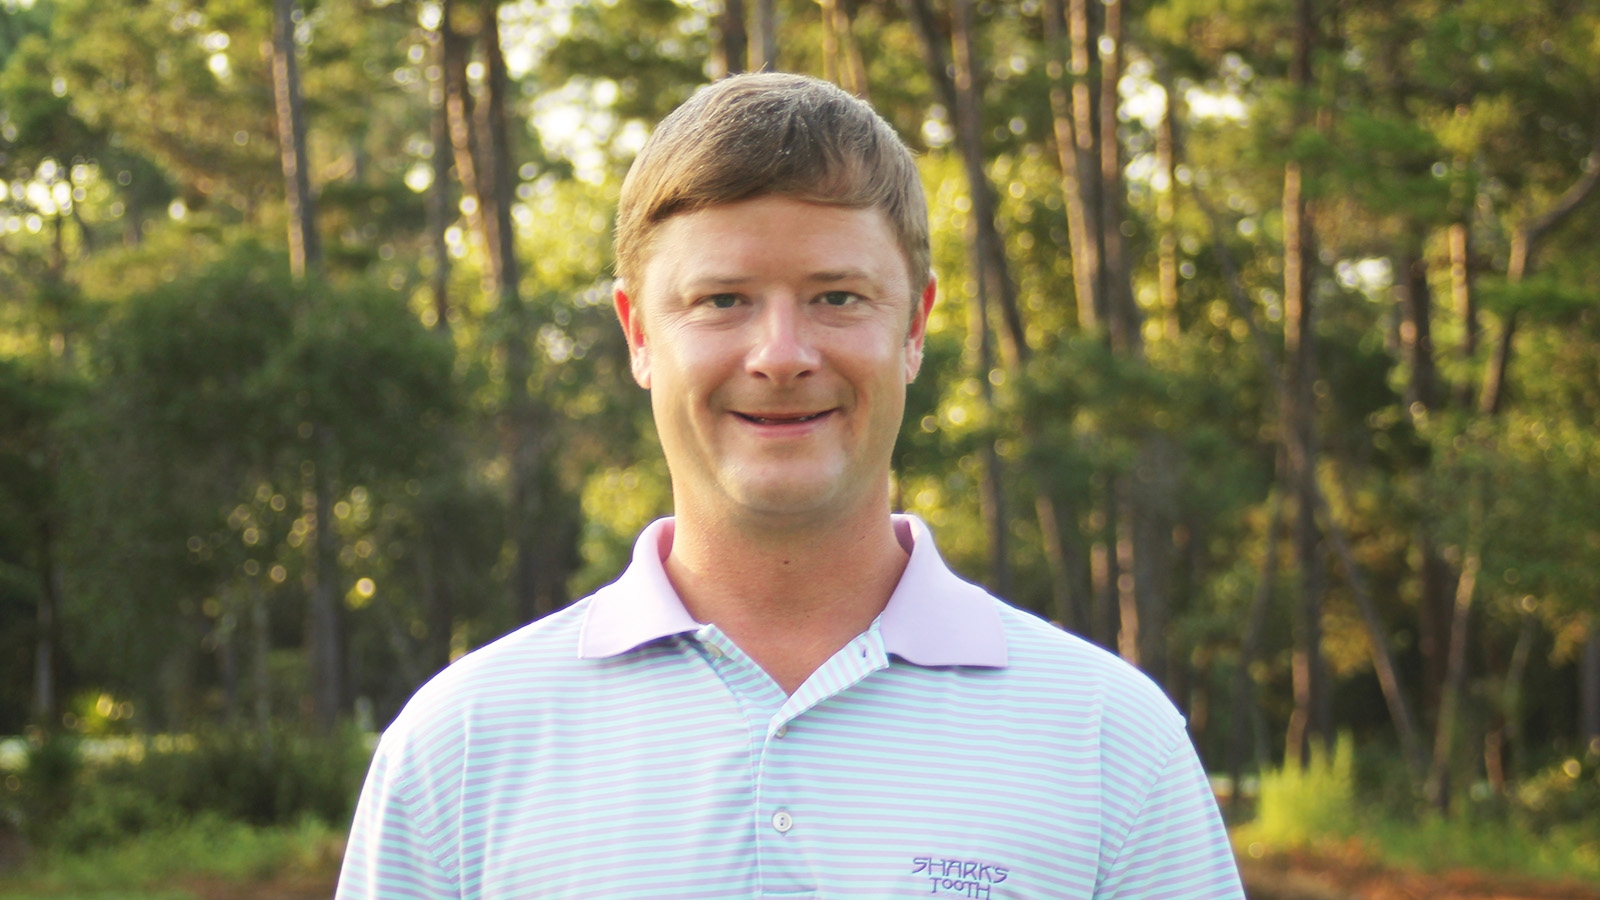 Lee Moran, Assistant Golf Pro